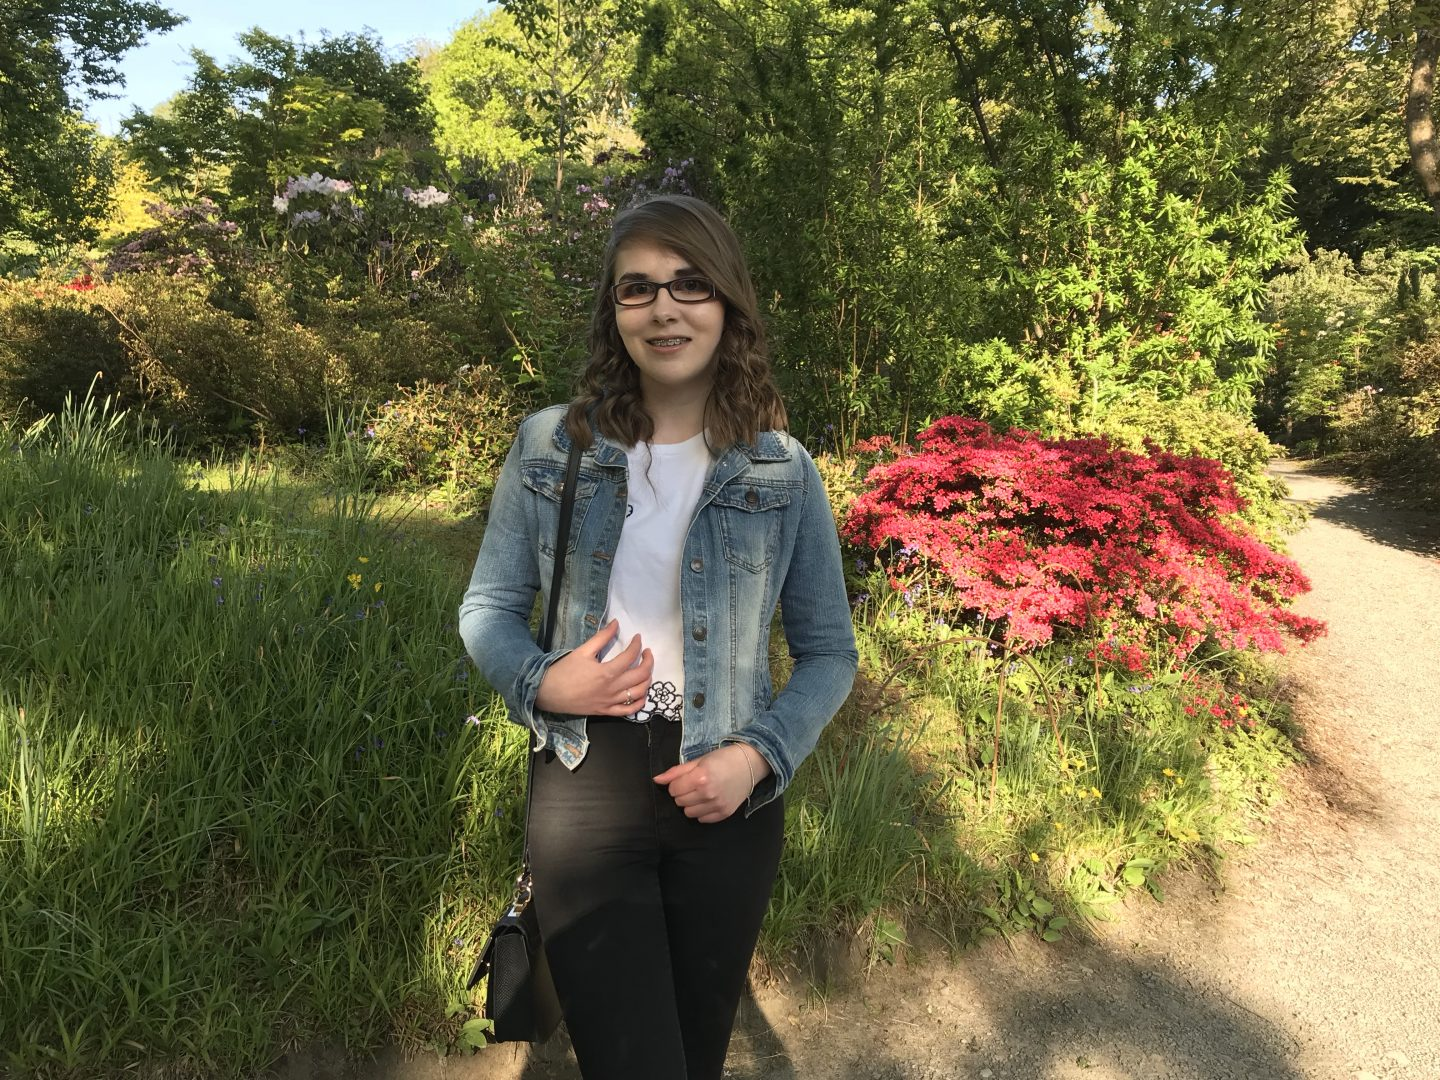 A photo of Elin in front of trees and flowers